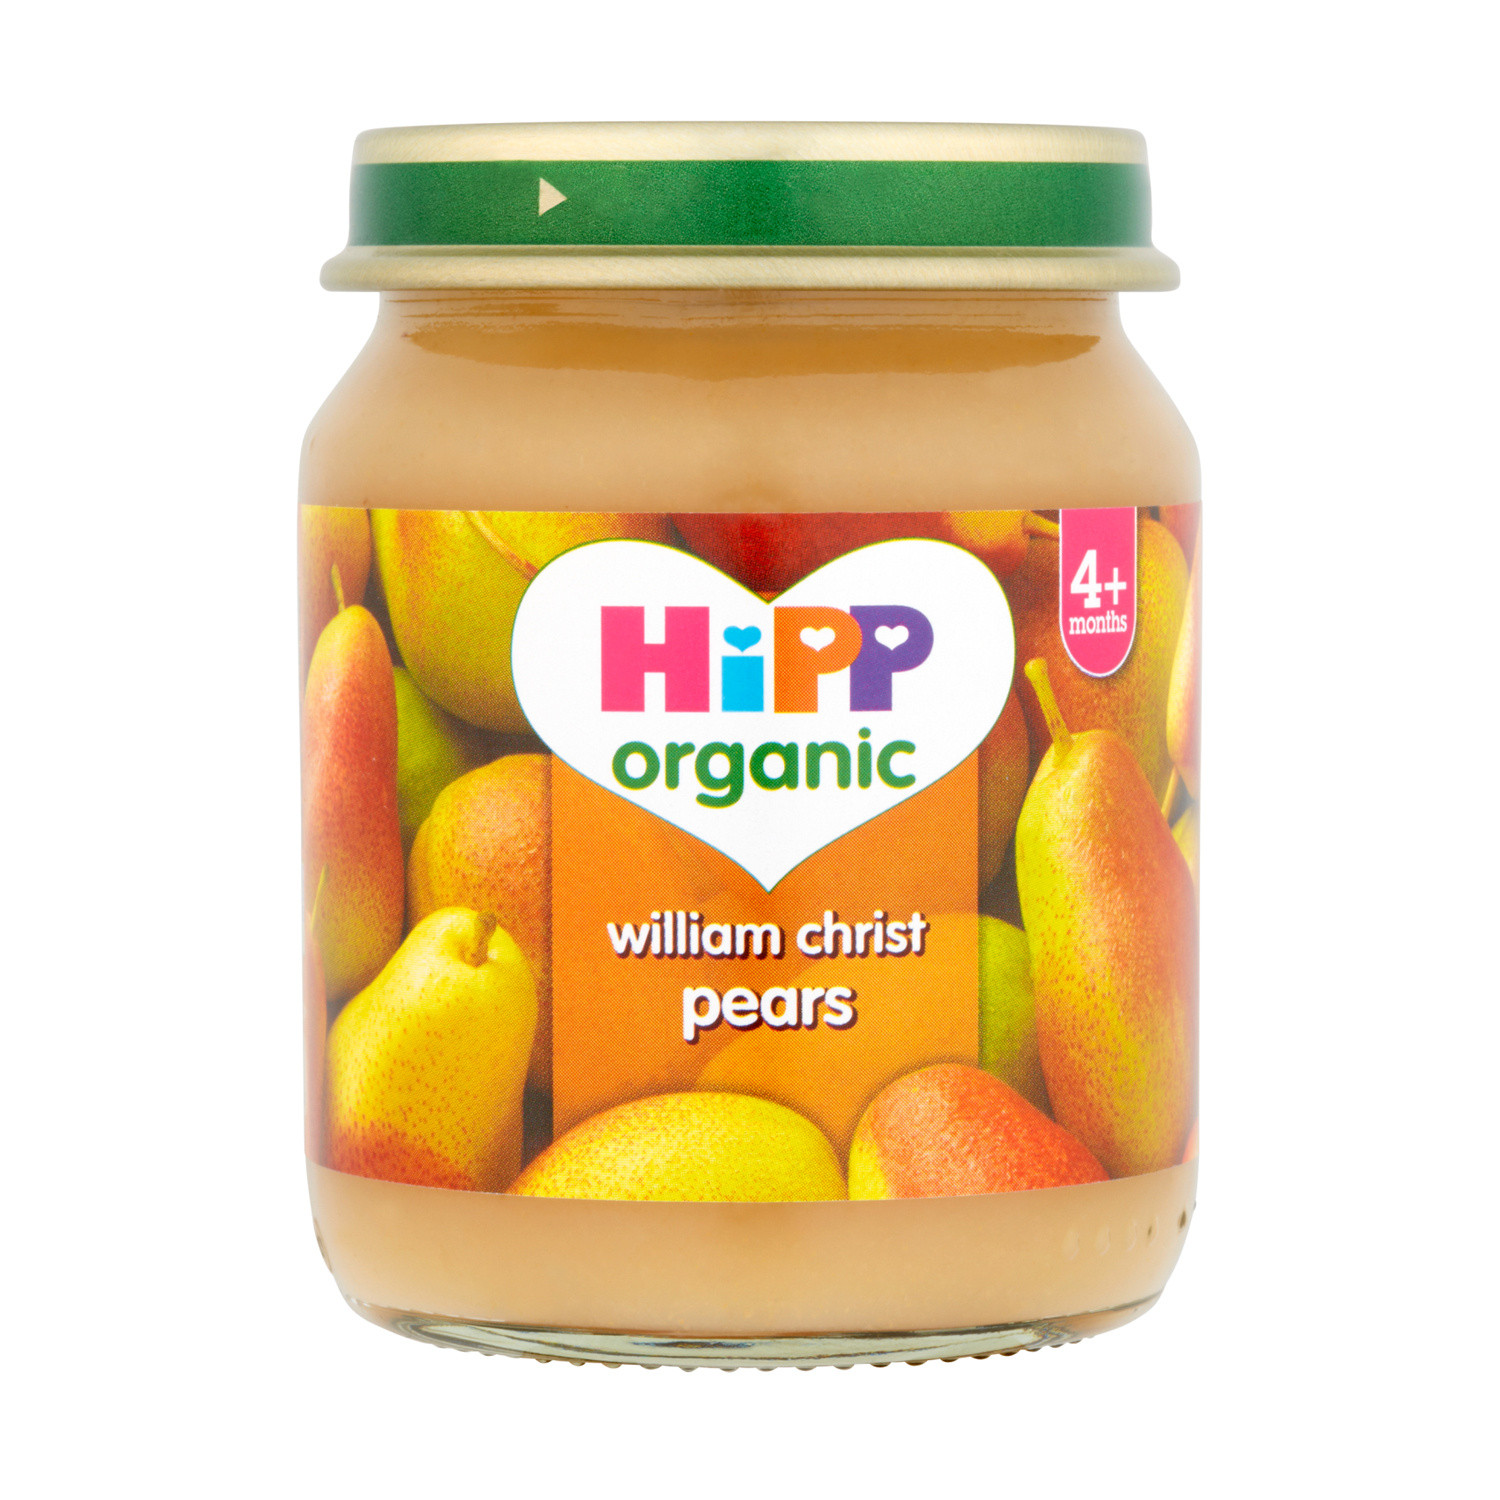 Hipp Organic 4months+ William Christ Pears